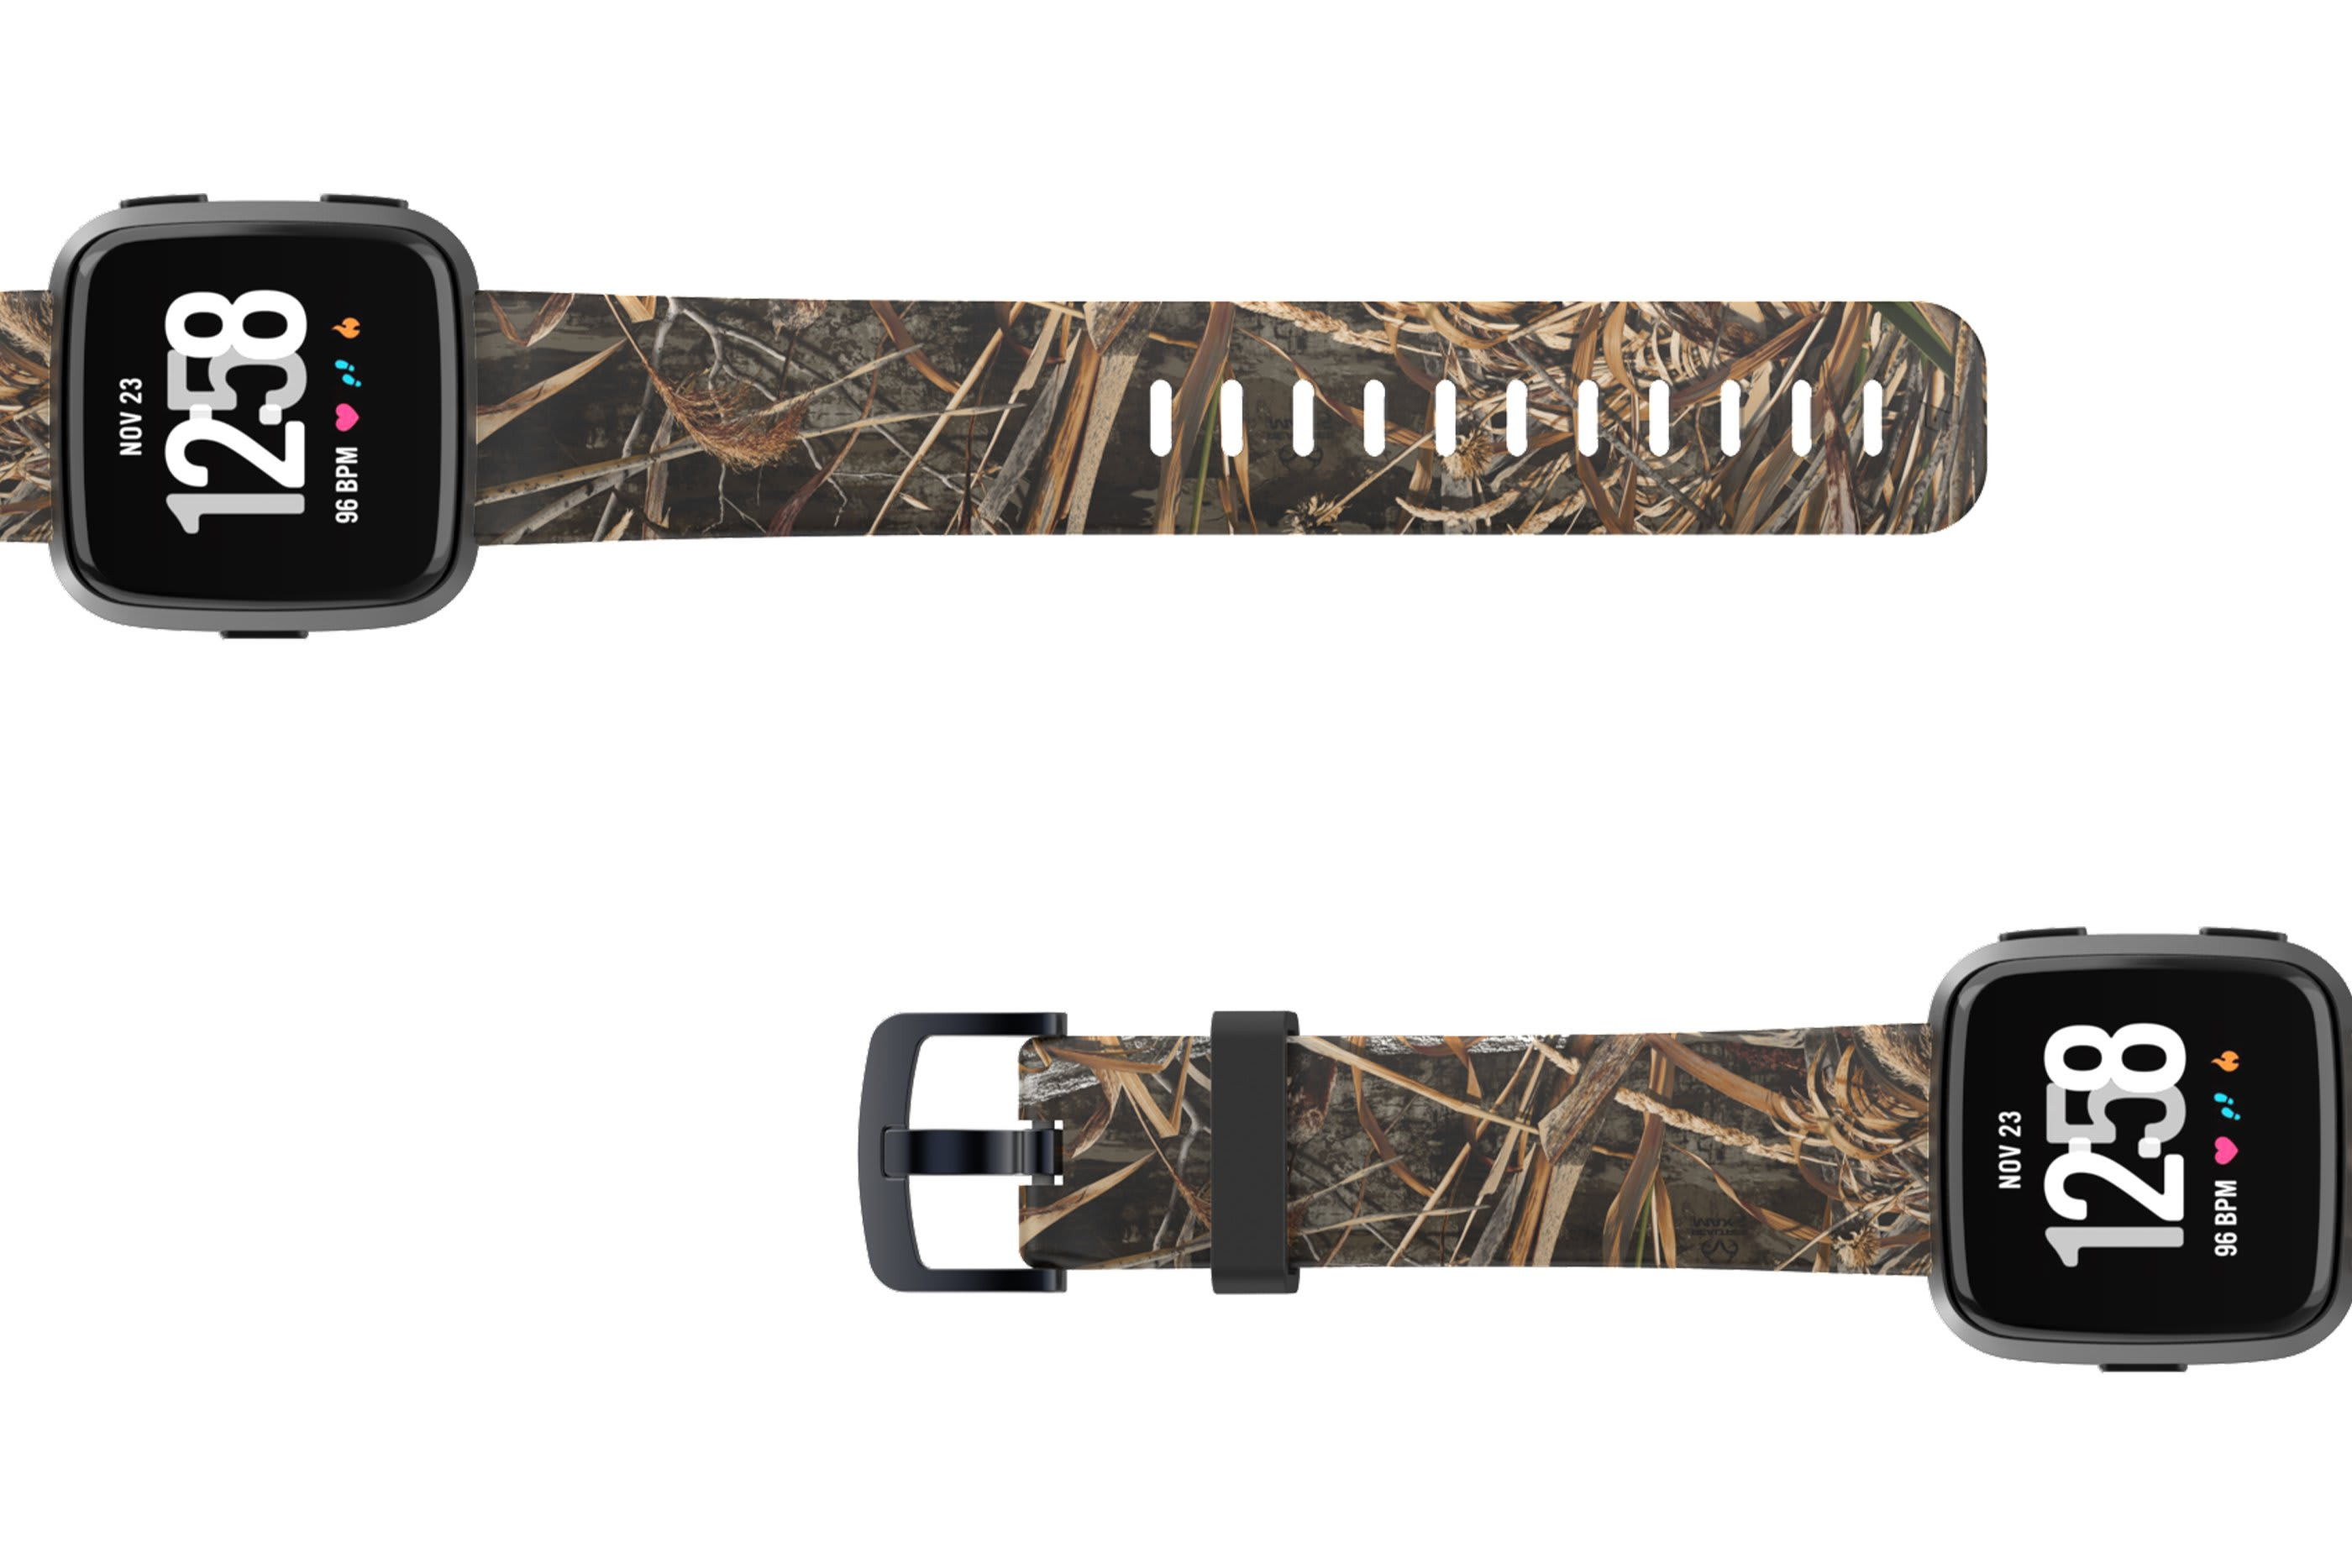 Realtree Max 5 Fitbit Versa watch band viewed top down